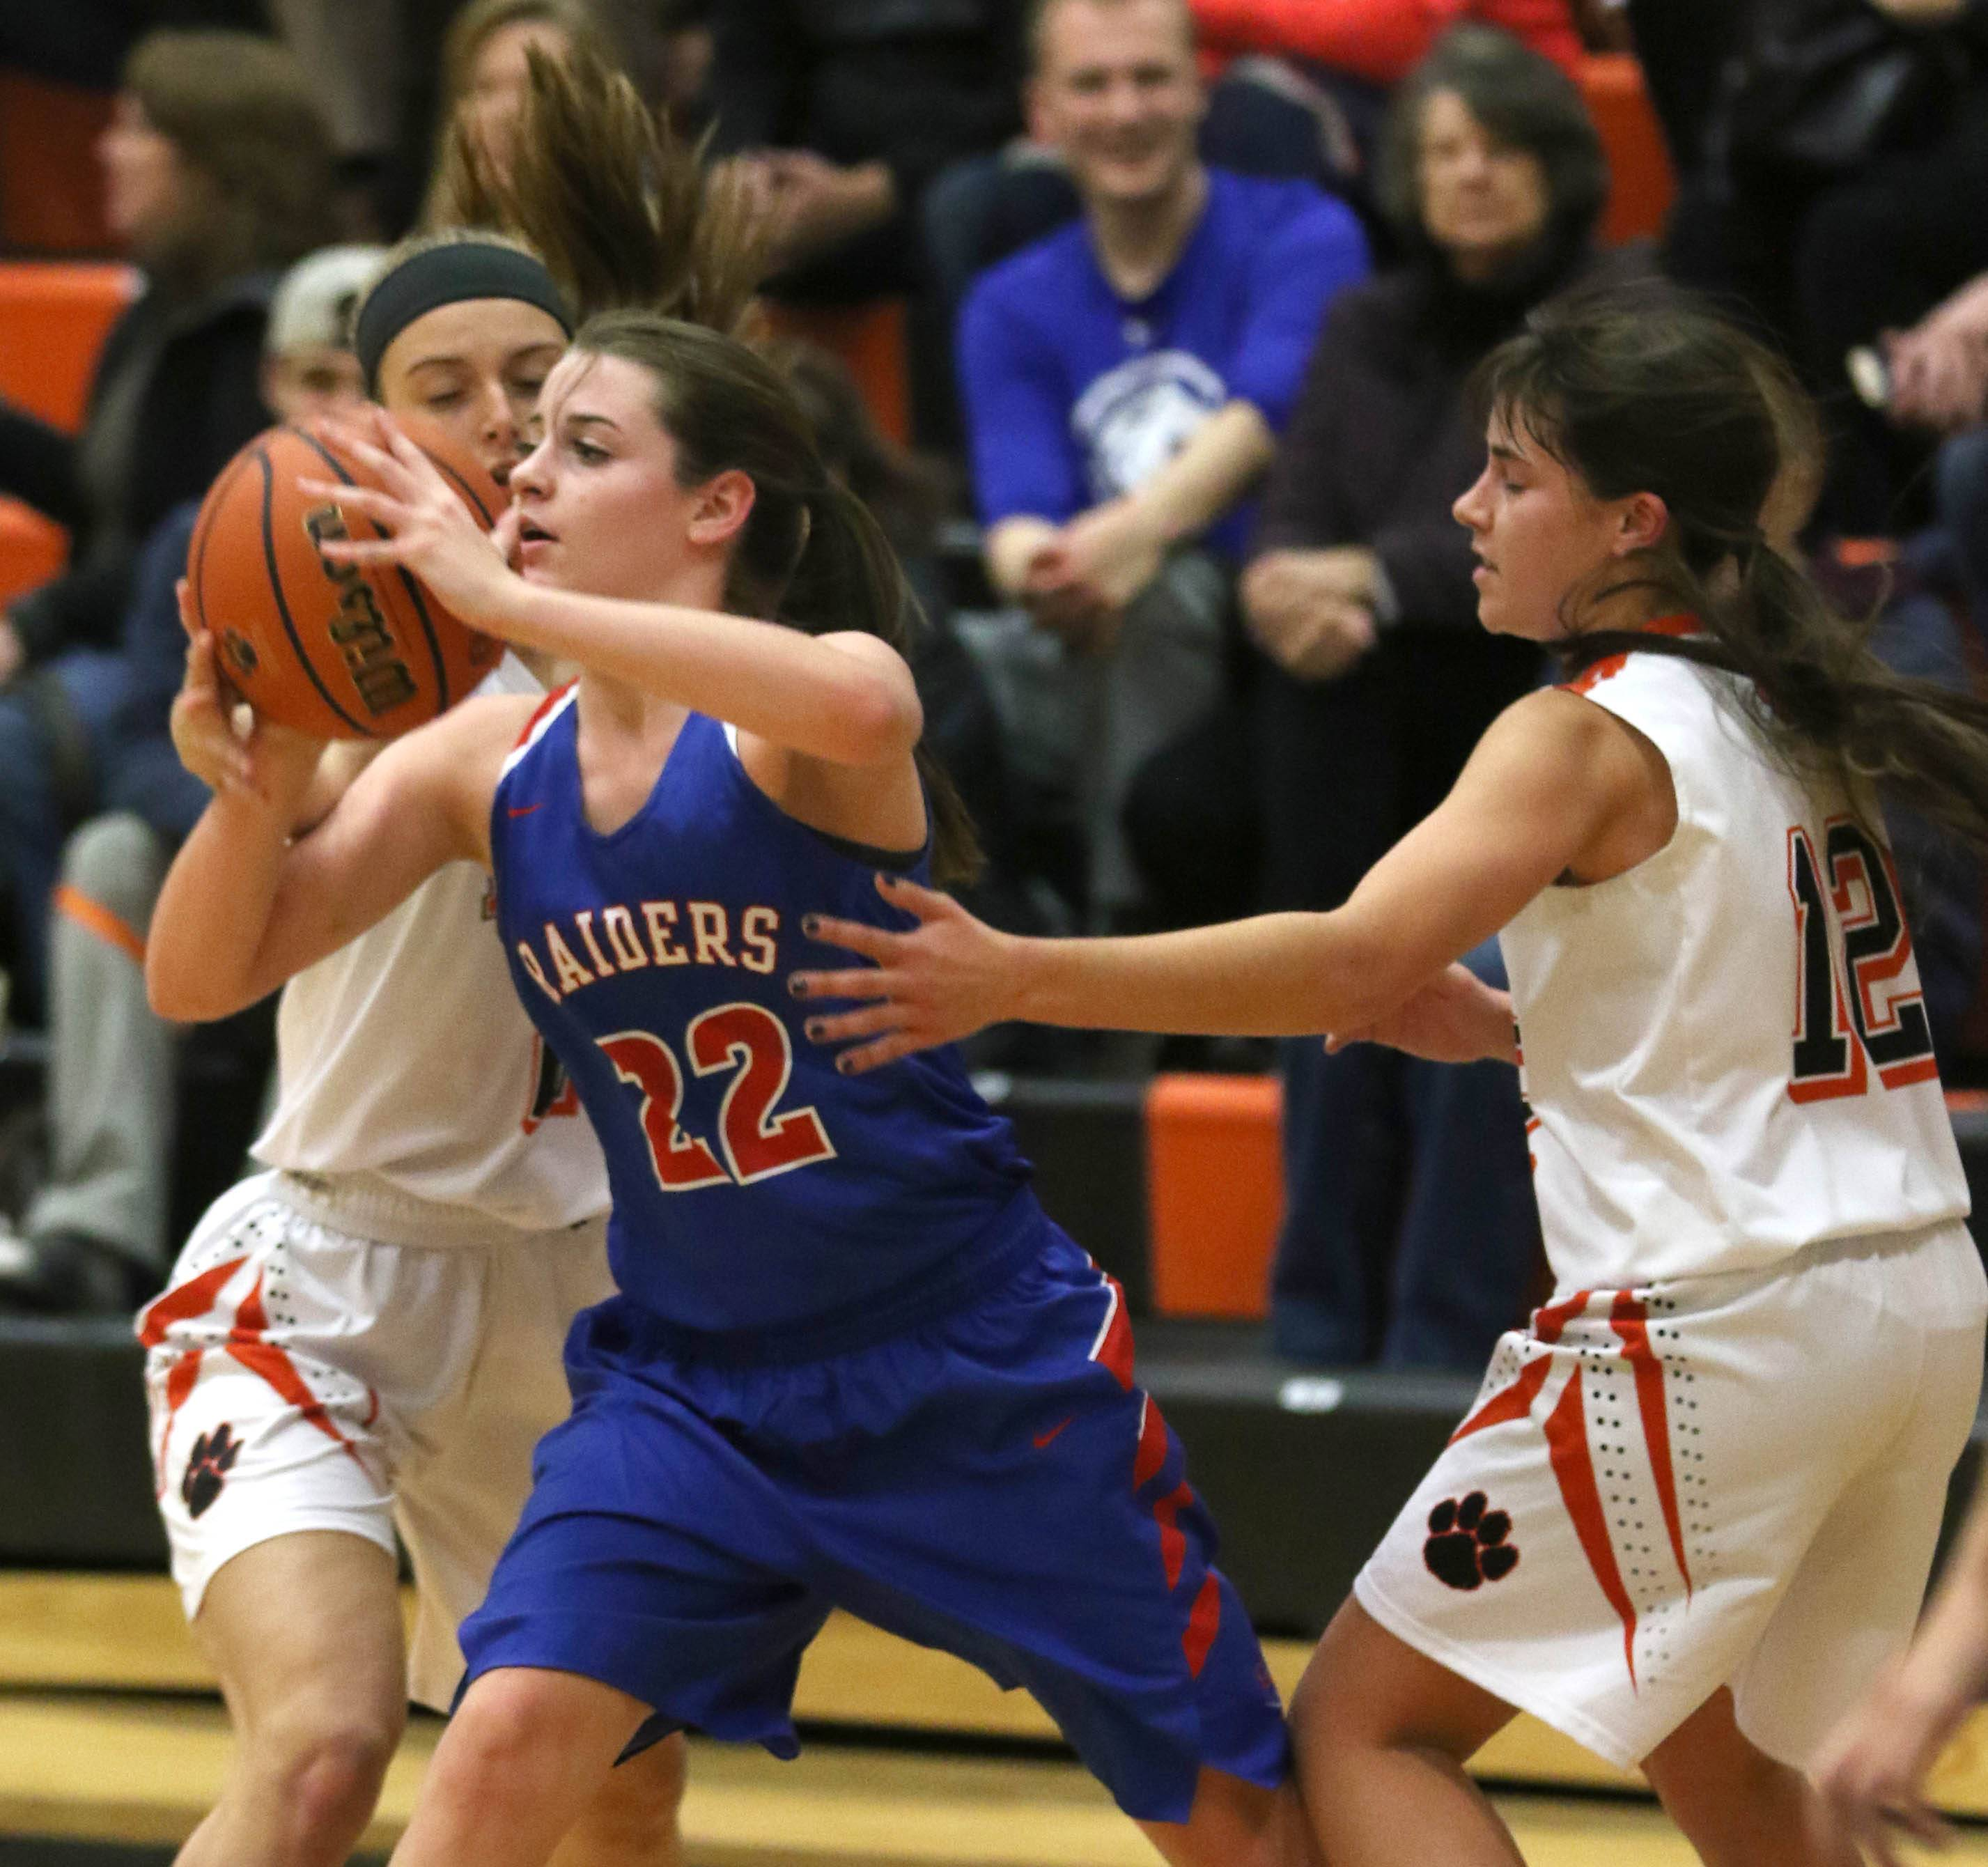 Glenbard South's Rocky LaPonte looks for an open teammate during varsity girls basketball at Wheaton Warrenville South High School Wednesday evening.